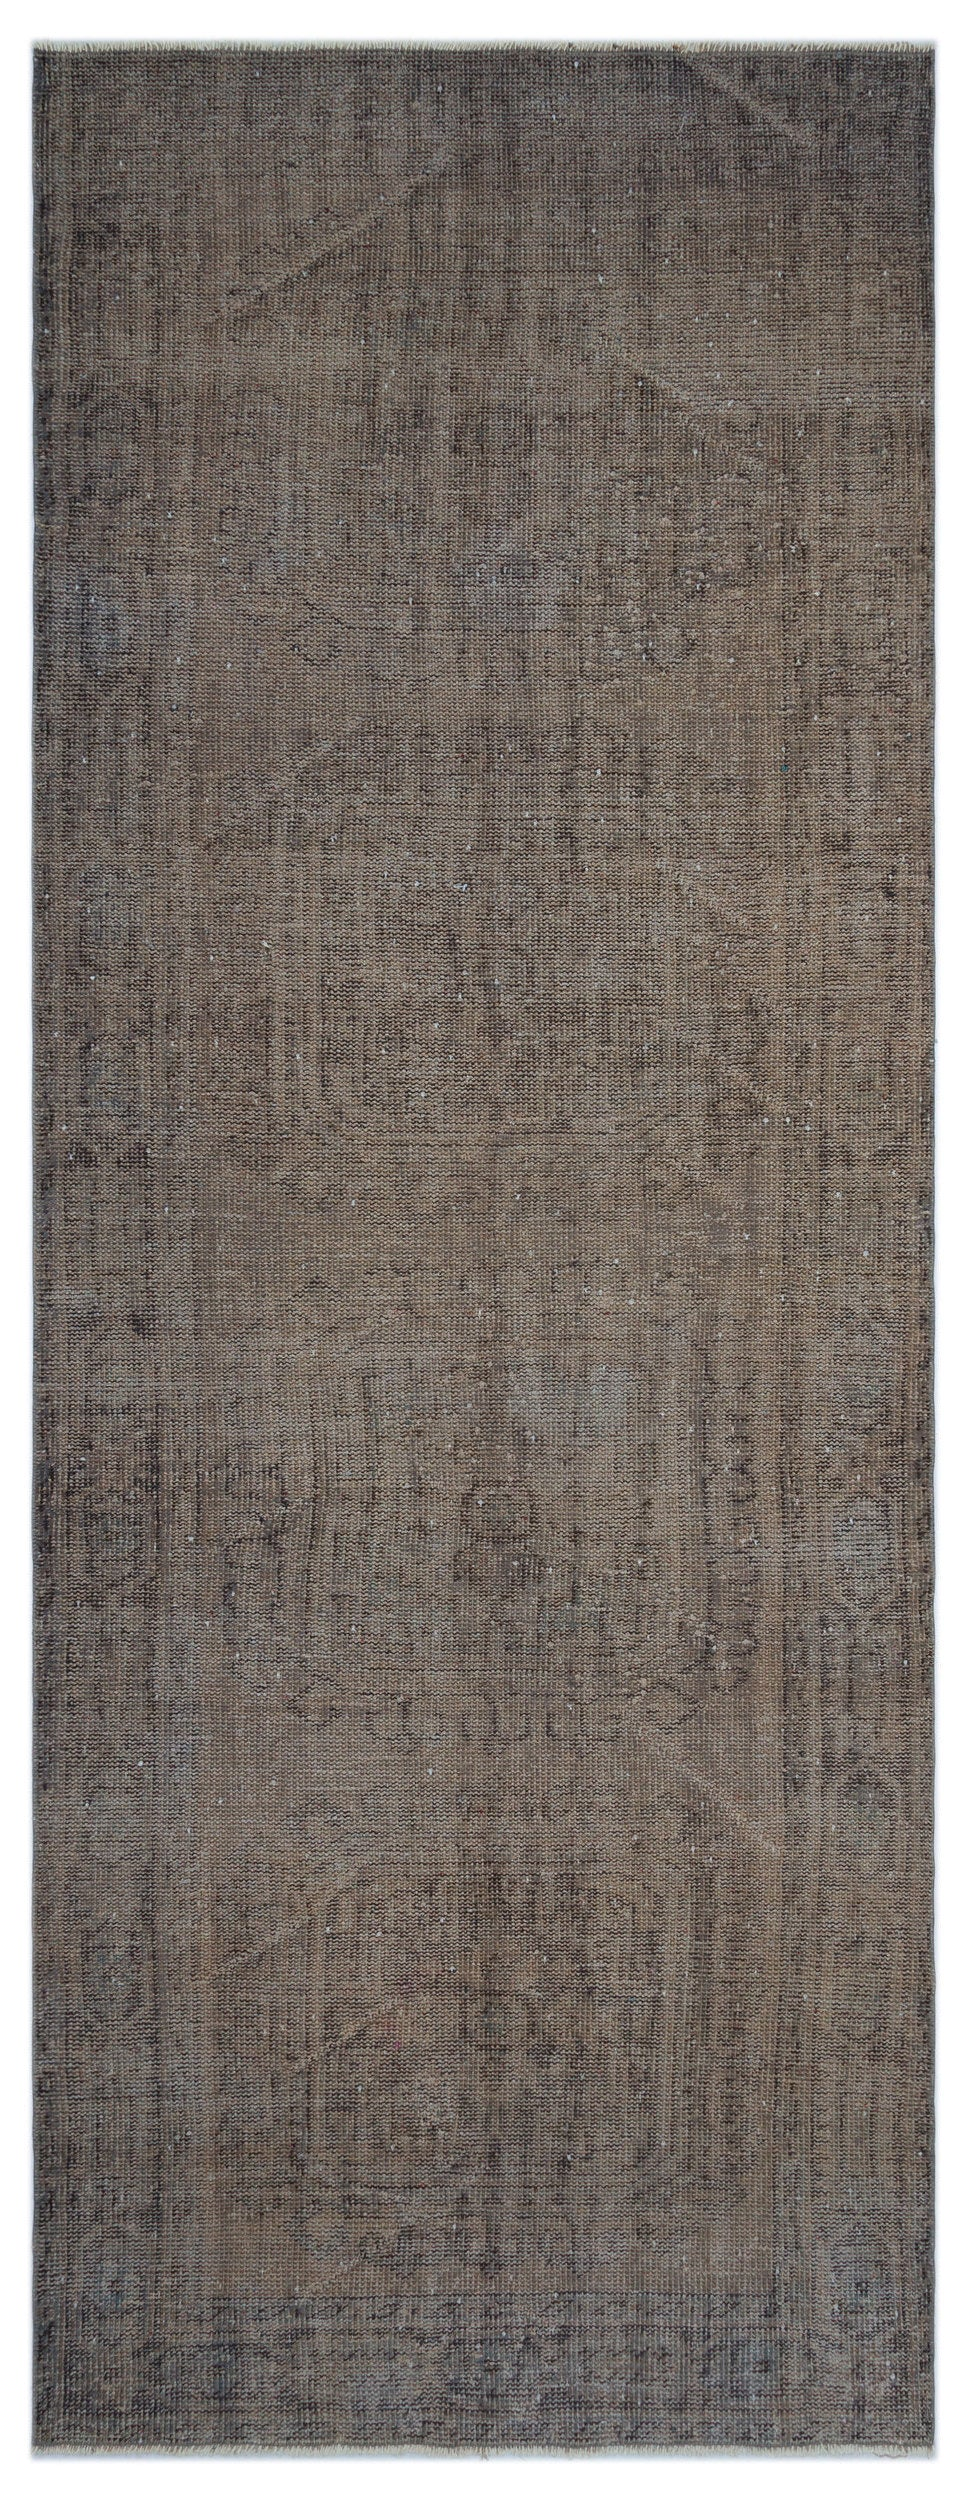 Brown Over Dyed Vintage Rug 4'4'' x 11'3'' ft 131 x 344 cm